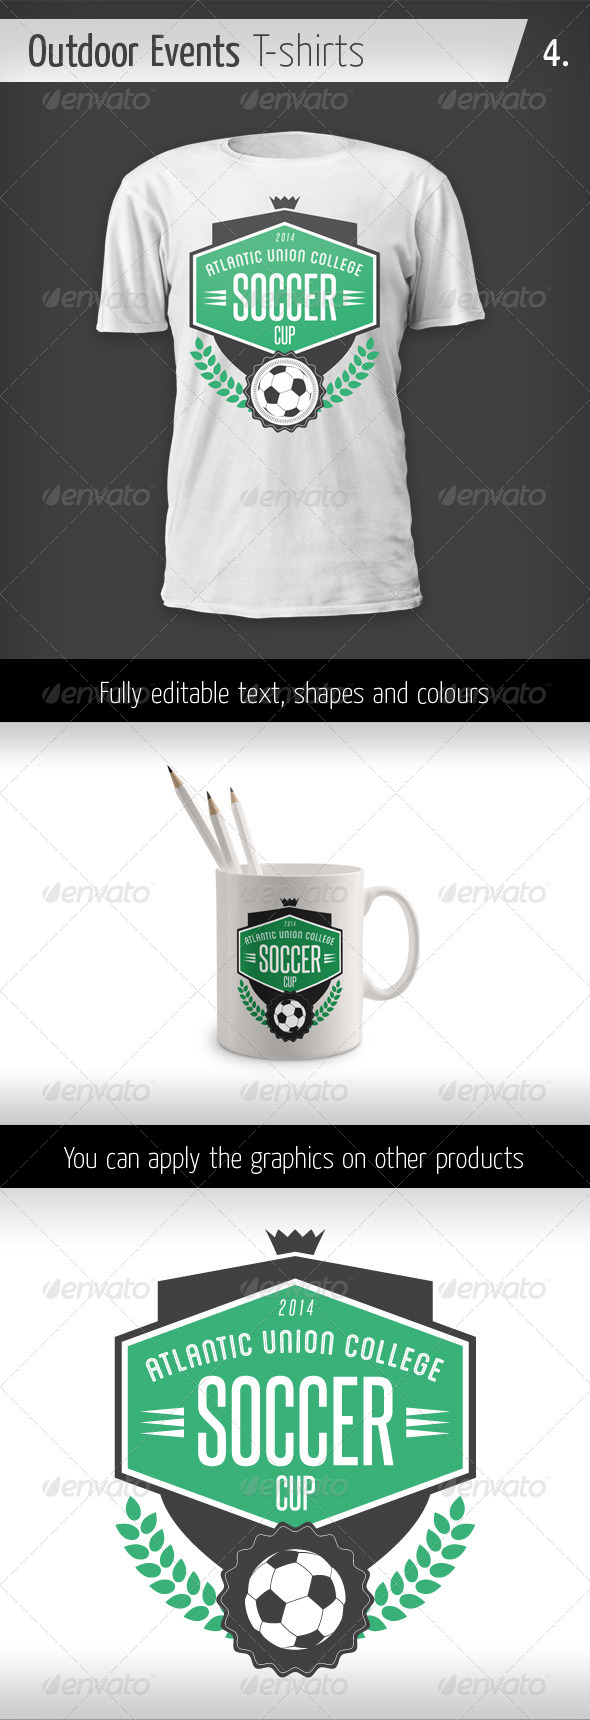 GraphicRiver Outdoor Events T-shirts Soccer Cup 6436186